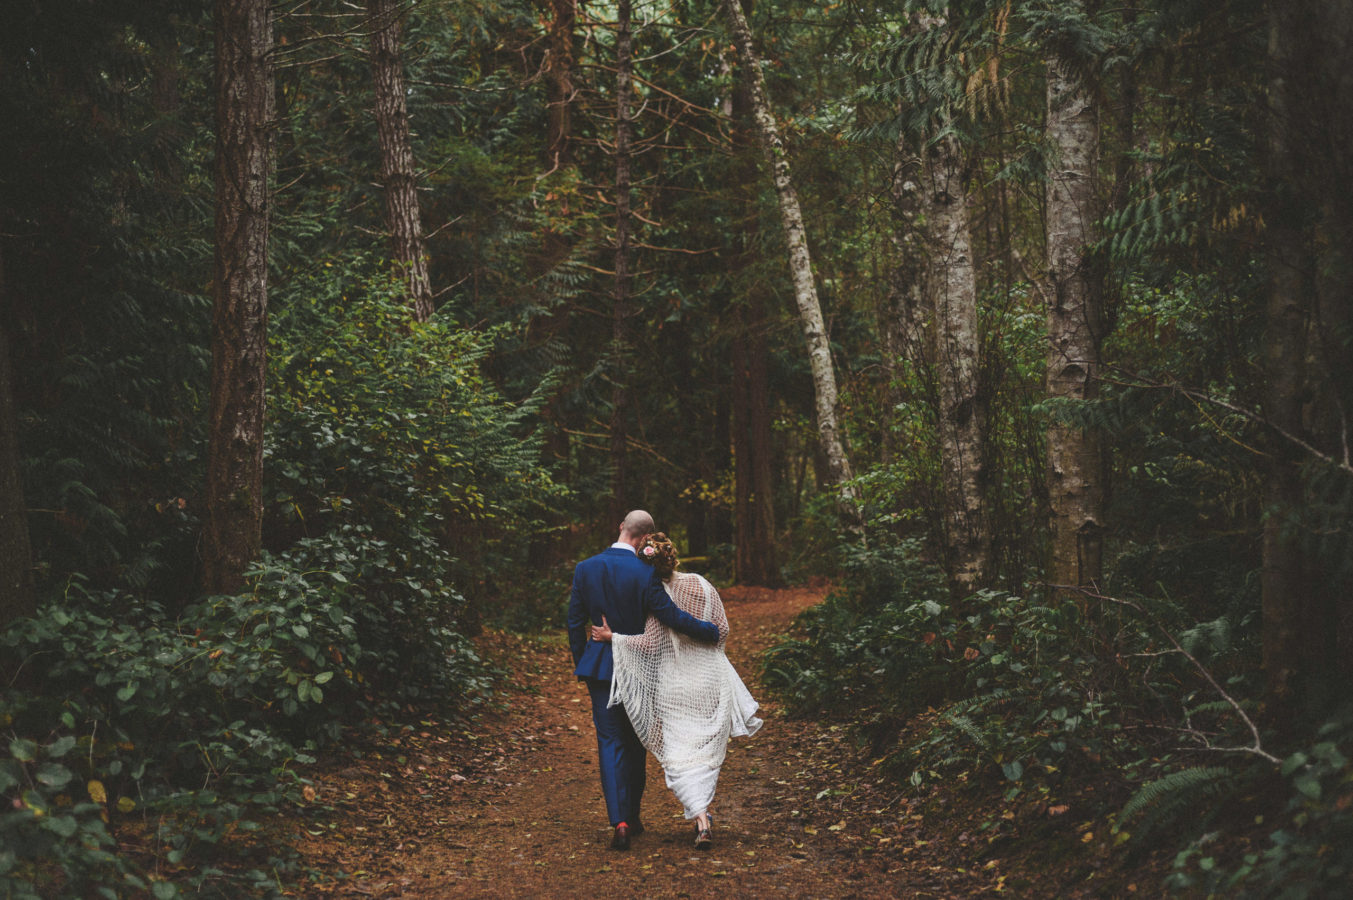 bride and groom walking arm in arm down a forest path surrounded by tall trees